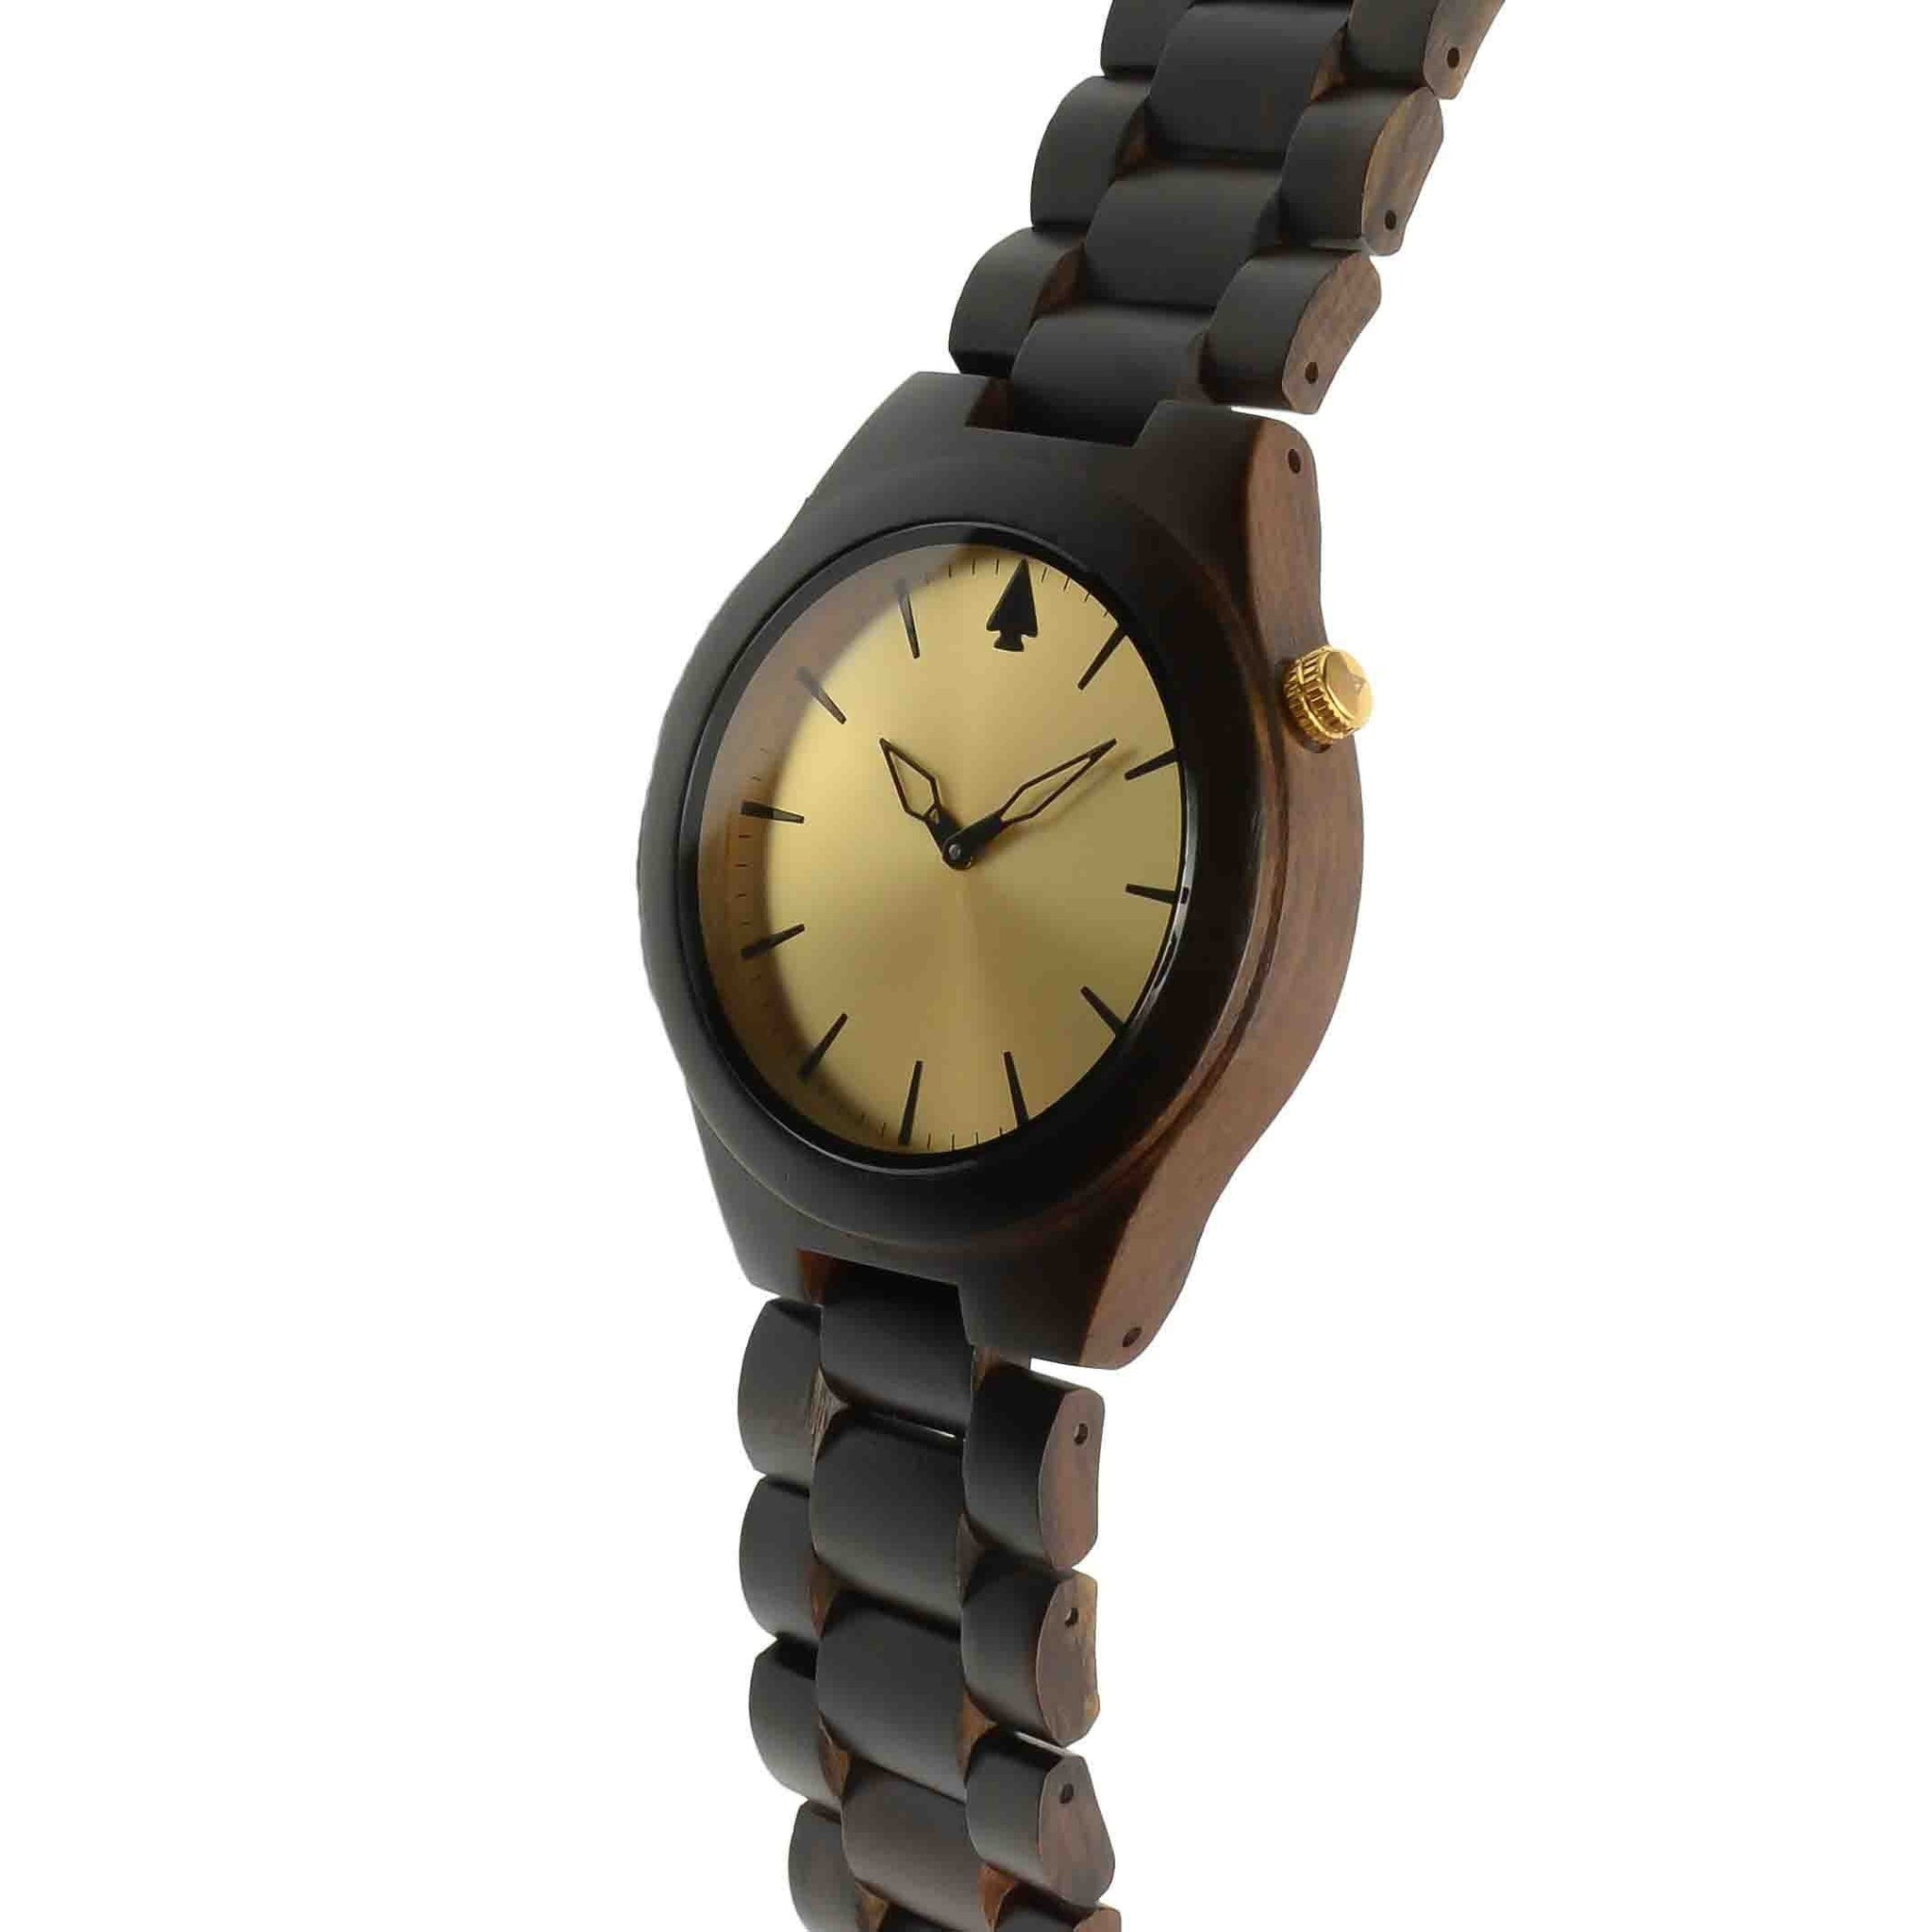 Apache Pine - The Arrow - Sandalwood Wooden Watch